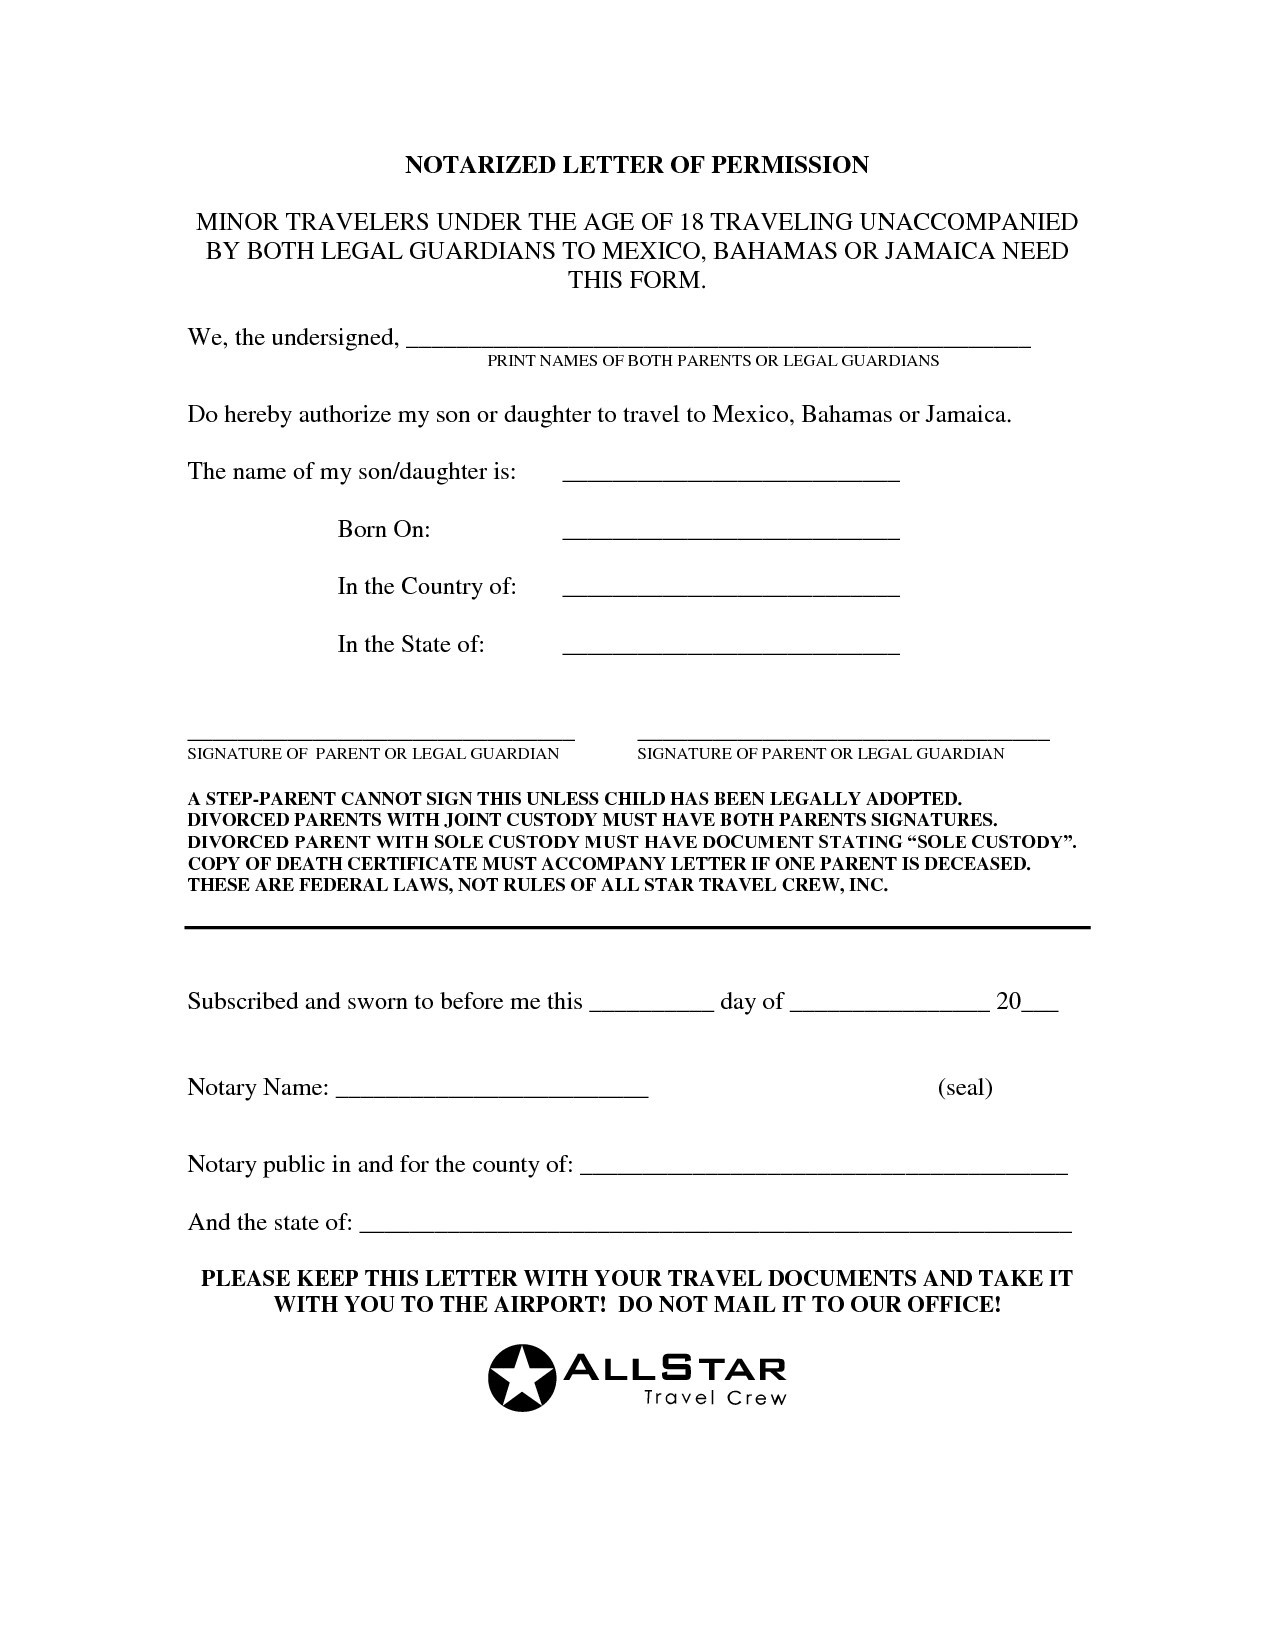 notarized letter template florida inspiration example notarized letter refrence inspiration best s